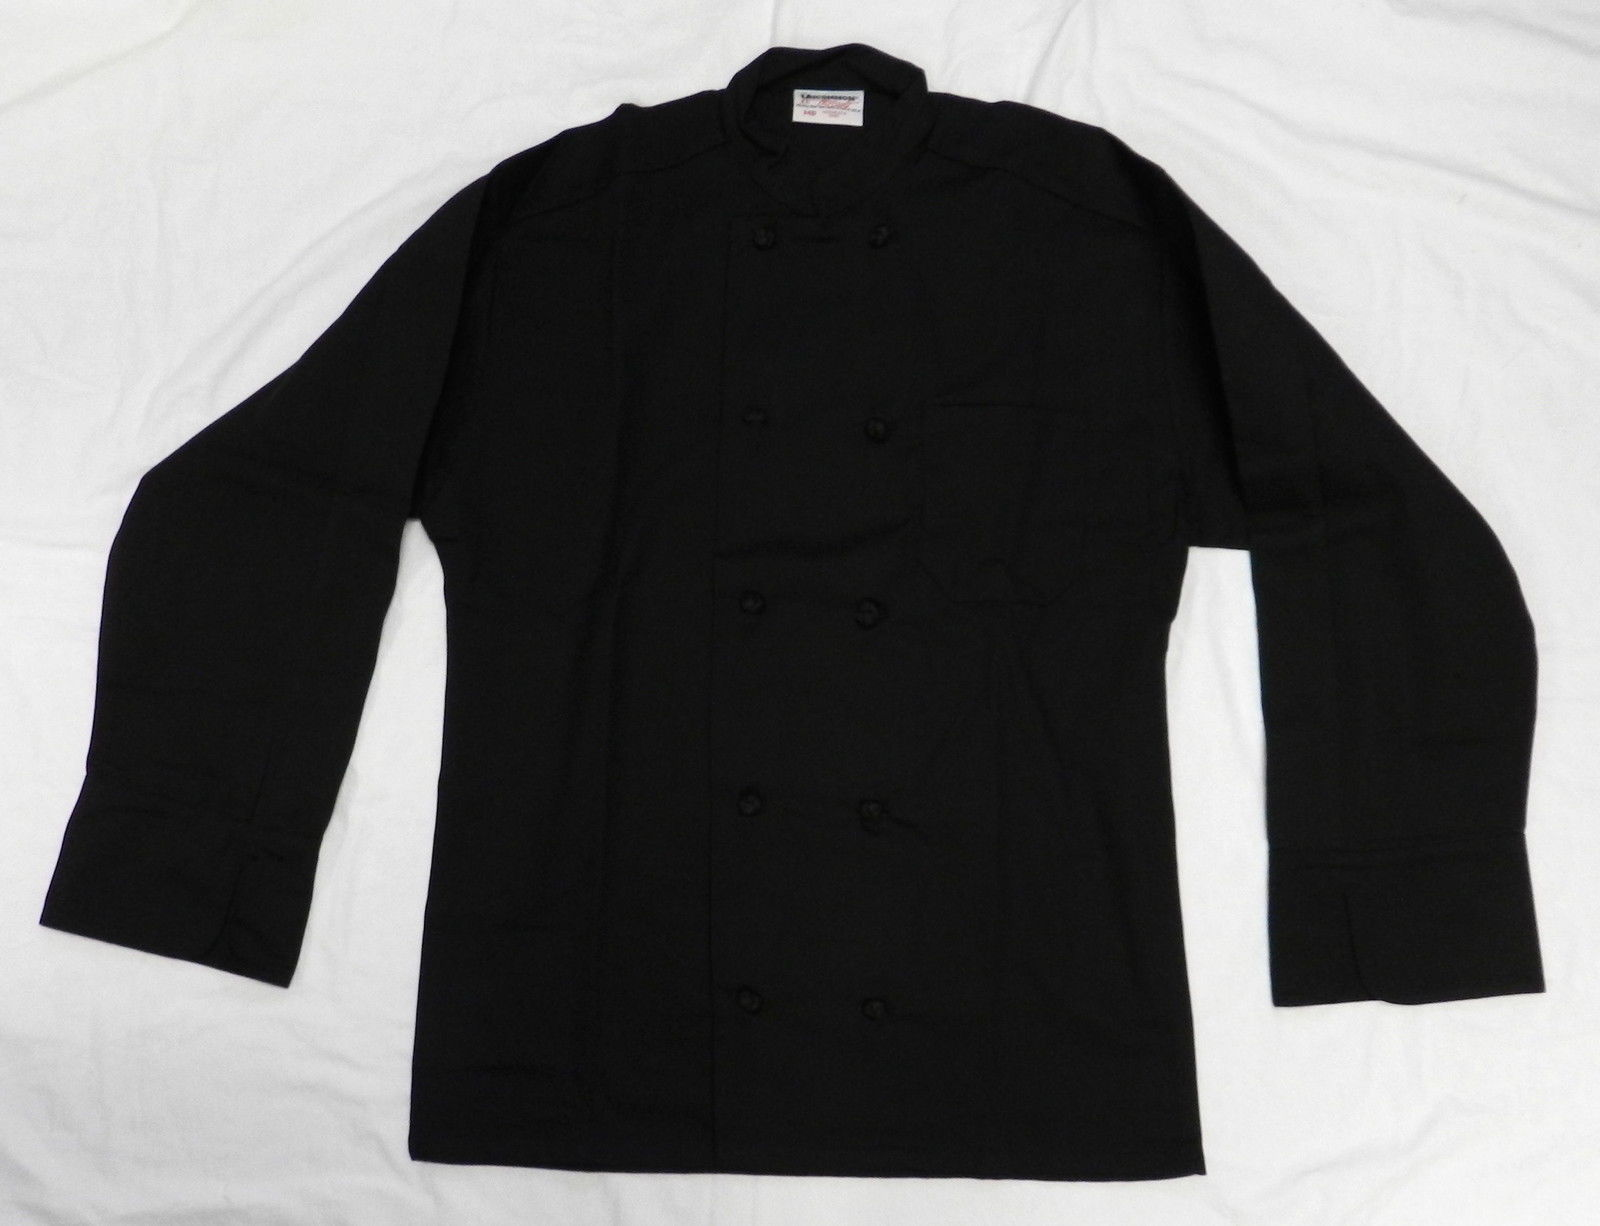 Primary image for Uncommon Threads 403 Cloth Knot Button Uniform Chef Coat Jacket Black 2XL New